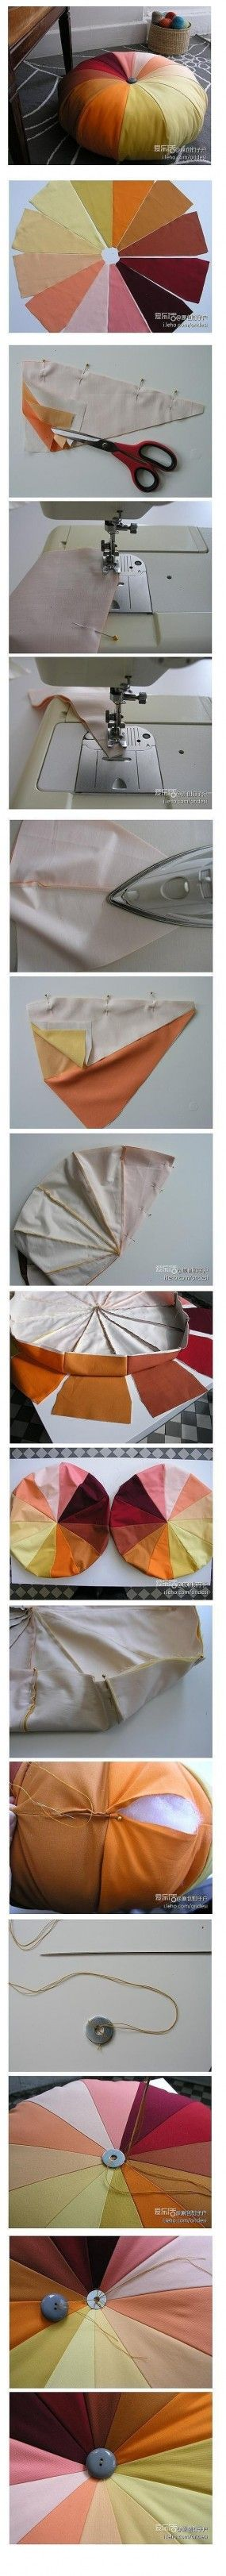 Make multi coloured meditation cushions for different occasions (xmas, bdays, pride, valentine's day, etc).